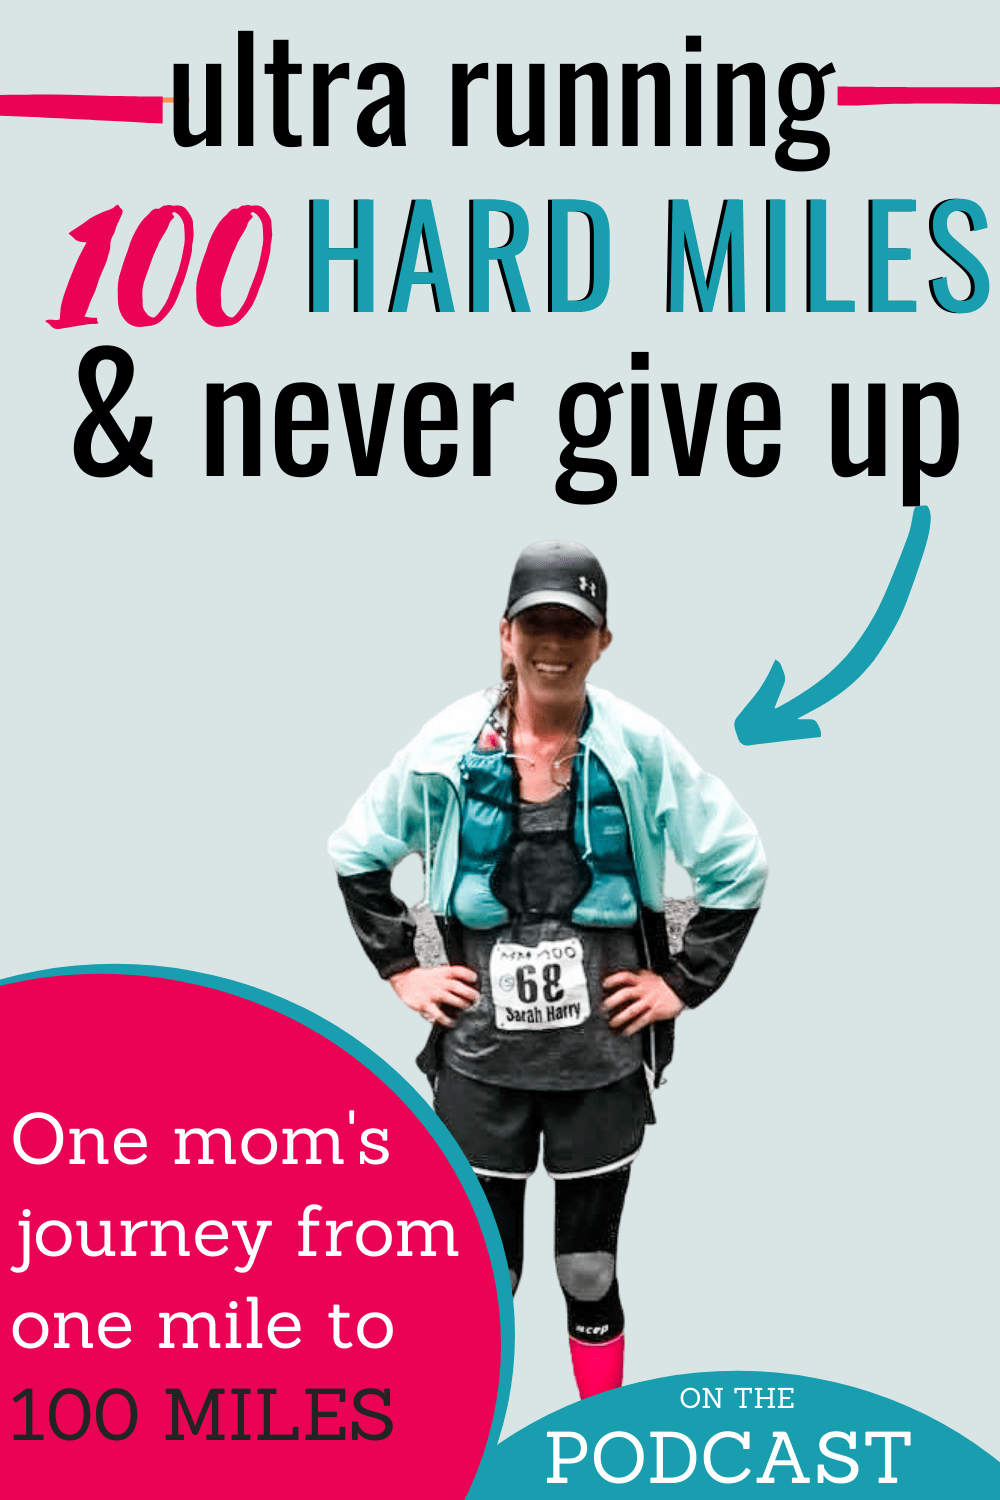 ULTRA RACING WITH HEART AND BRAVERY: SARAH IS UNSTOPPABLE